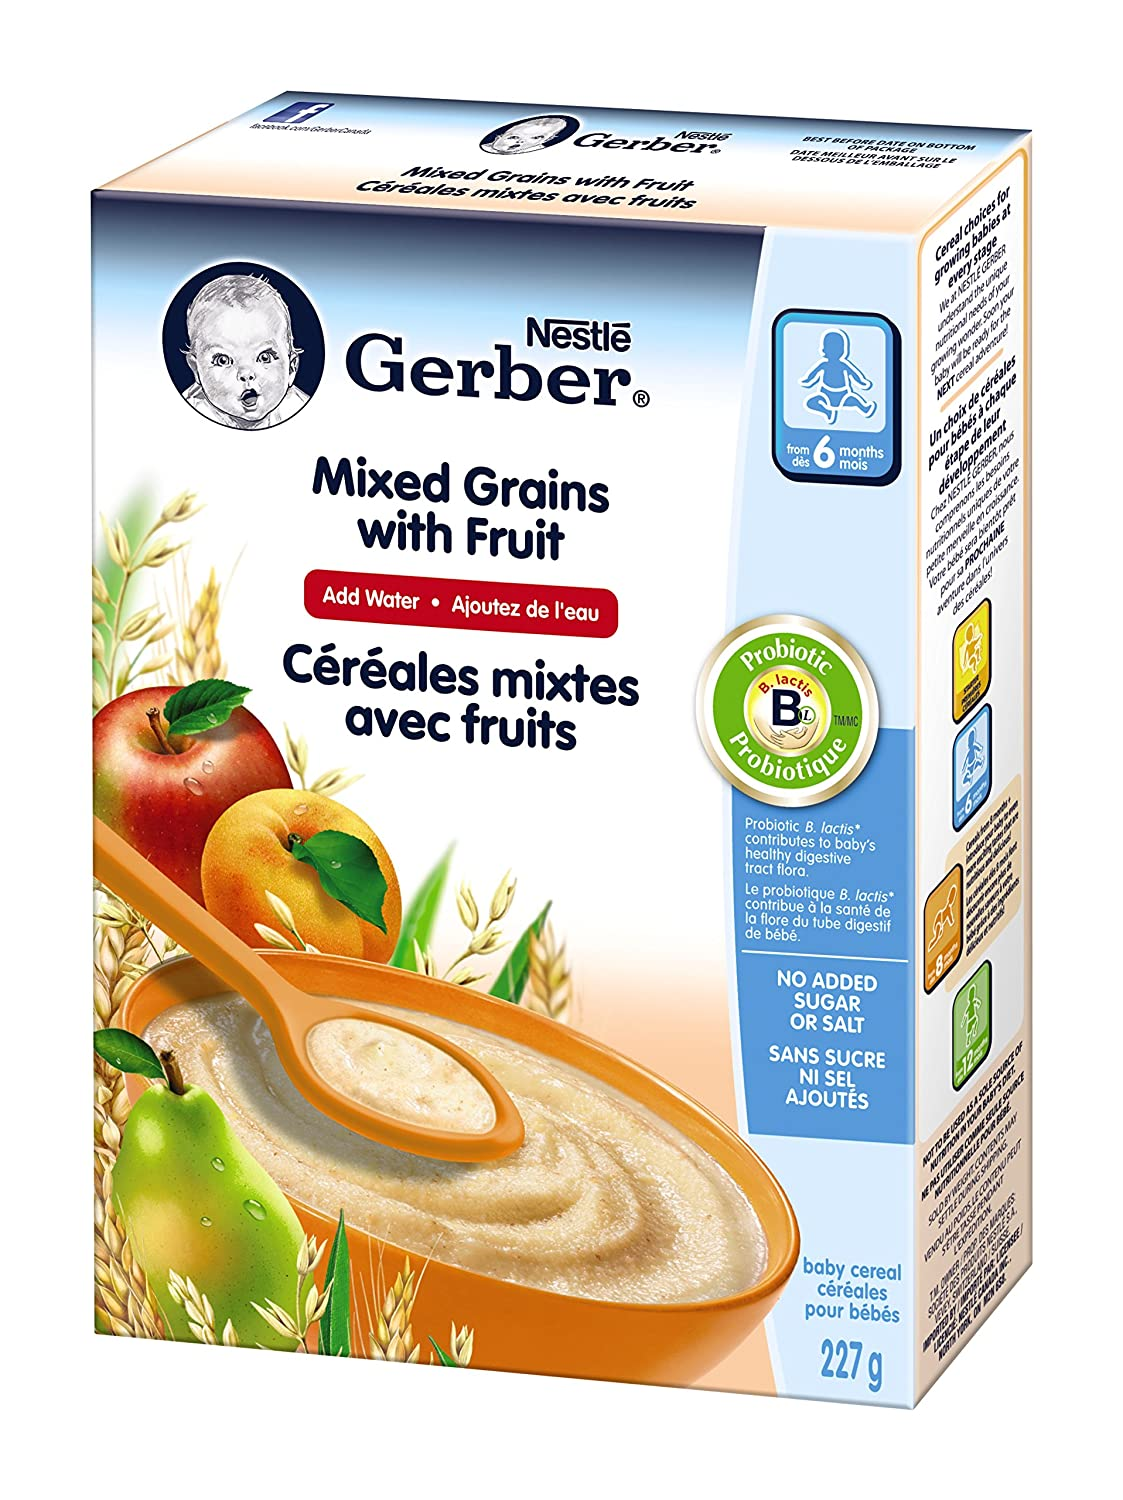 Nestlé Gerber Wheat with Banana & Strawberry Baby Cereal, 227g (6 Count) Nestlé Canada Inc. 12294182